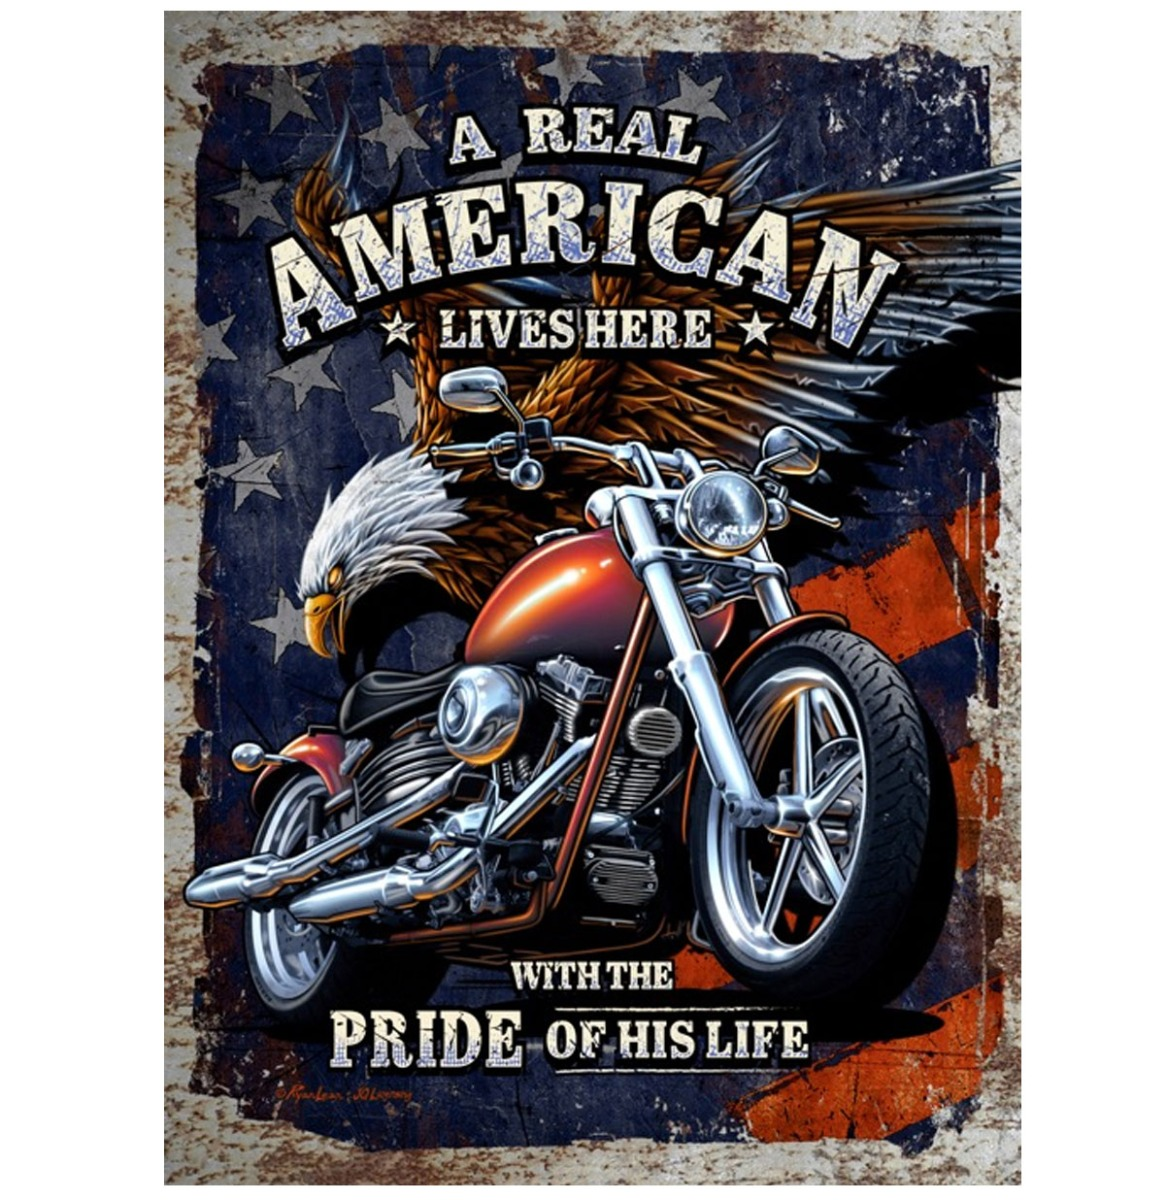 Motorcycle A Real American Lives Here Metalen Bord Met Reliëf - 43 x 31 cm